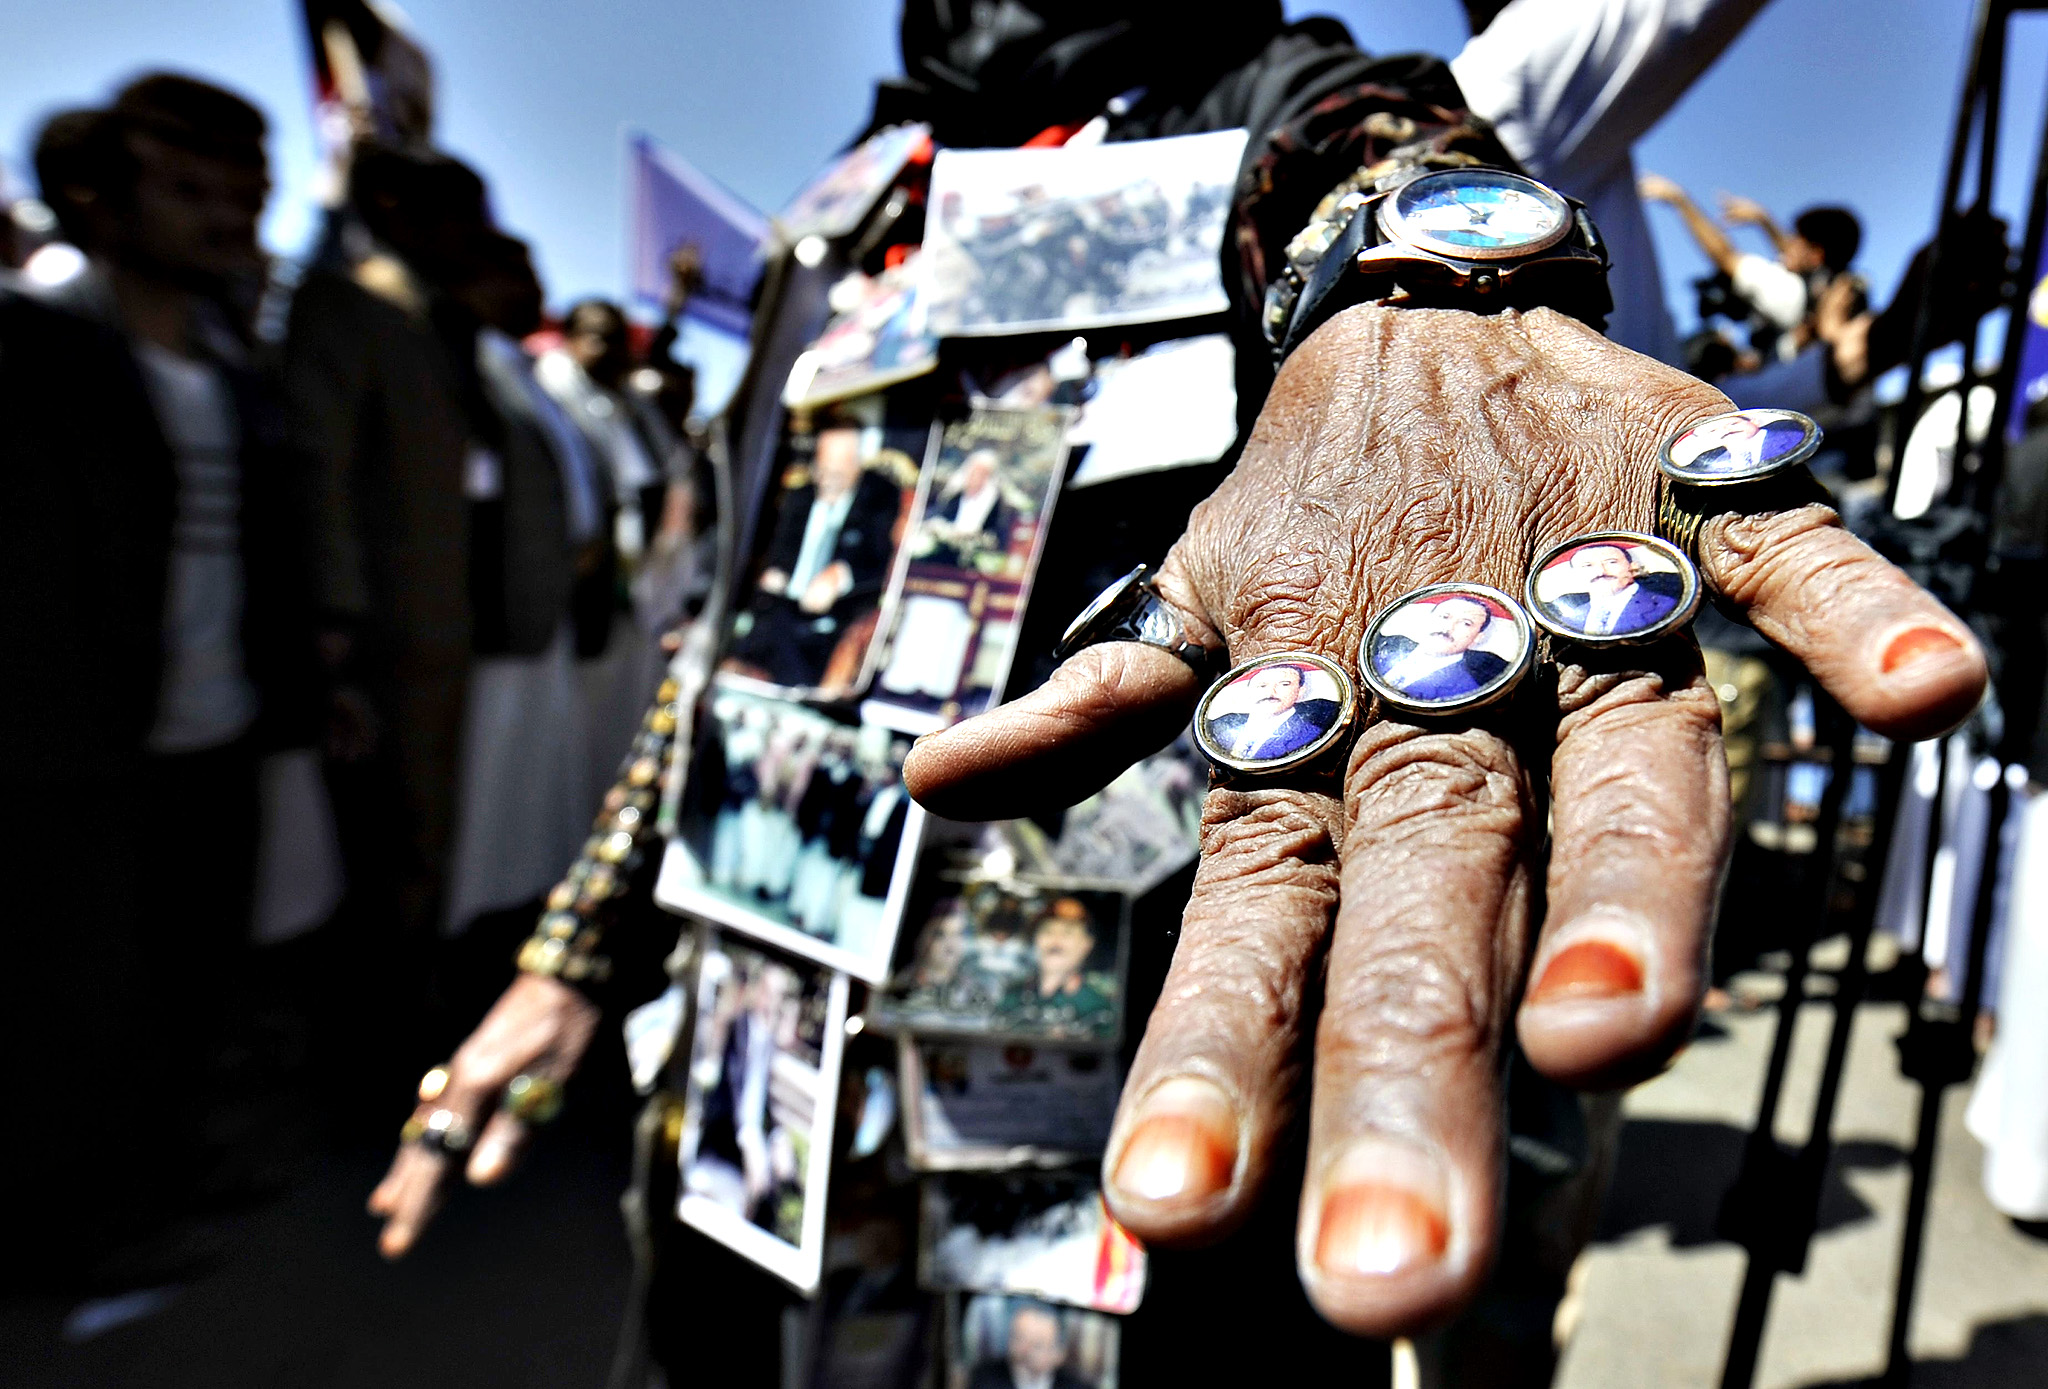 A Yemeni woman wears buttons depicting Yemen's ex-president Ali Abdullah Saleh during a gathering to protest against foreign interferences, in Sana'a, Yemen, 07 November 2014. Reports state thousands of supporters of former Yemeni president Ali Abdullah Saleh gathered in center Sana'a to protest against a US-backed move of the UN Security Council to impose a travel ban and assets freeze on Saleh due to his involvement in obstructing the country s transitional process. Recently, he has been accused of colluding with Shiite Houthi fighters in their military takeover of much of Yemen.